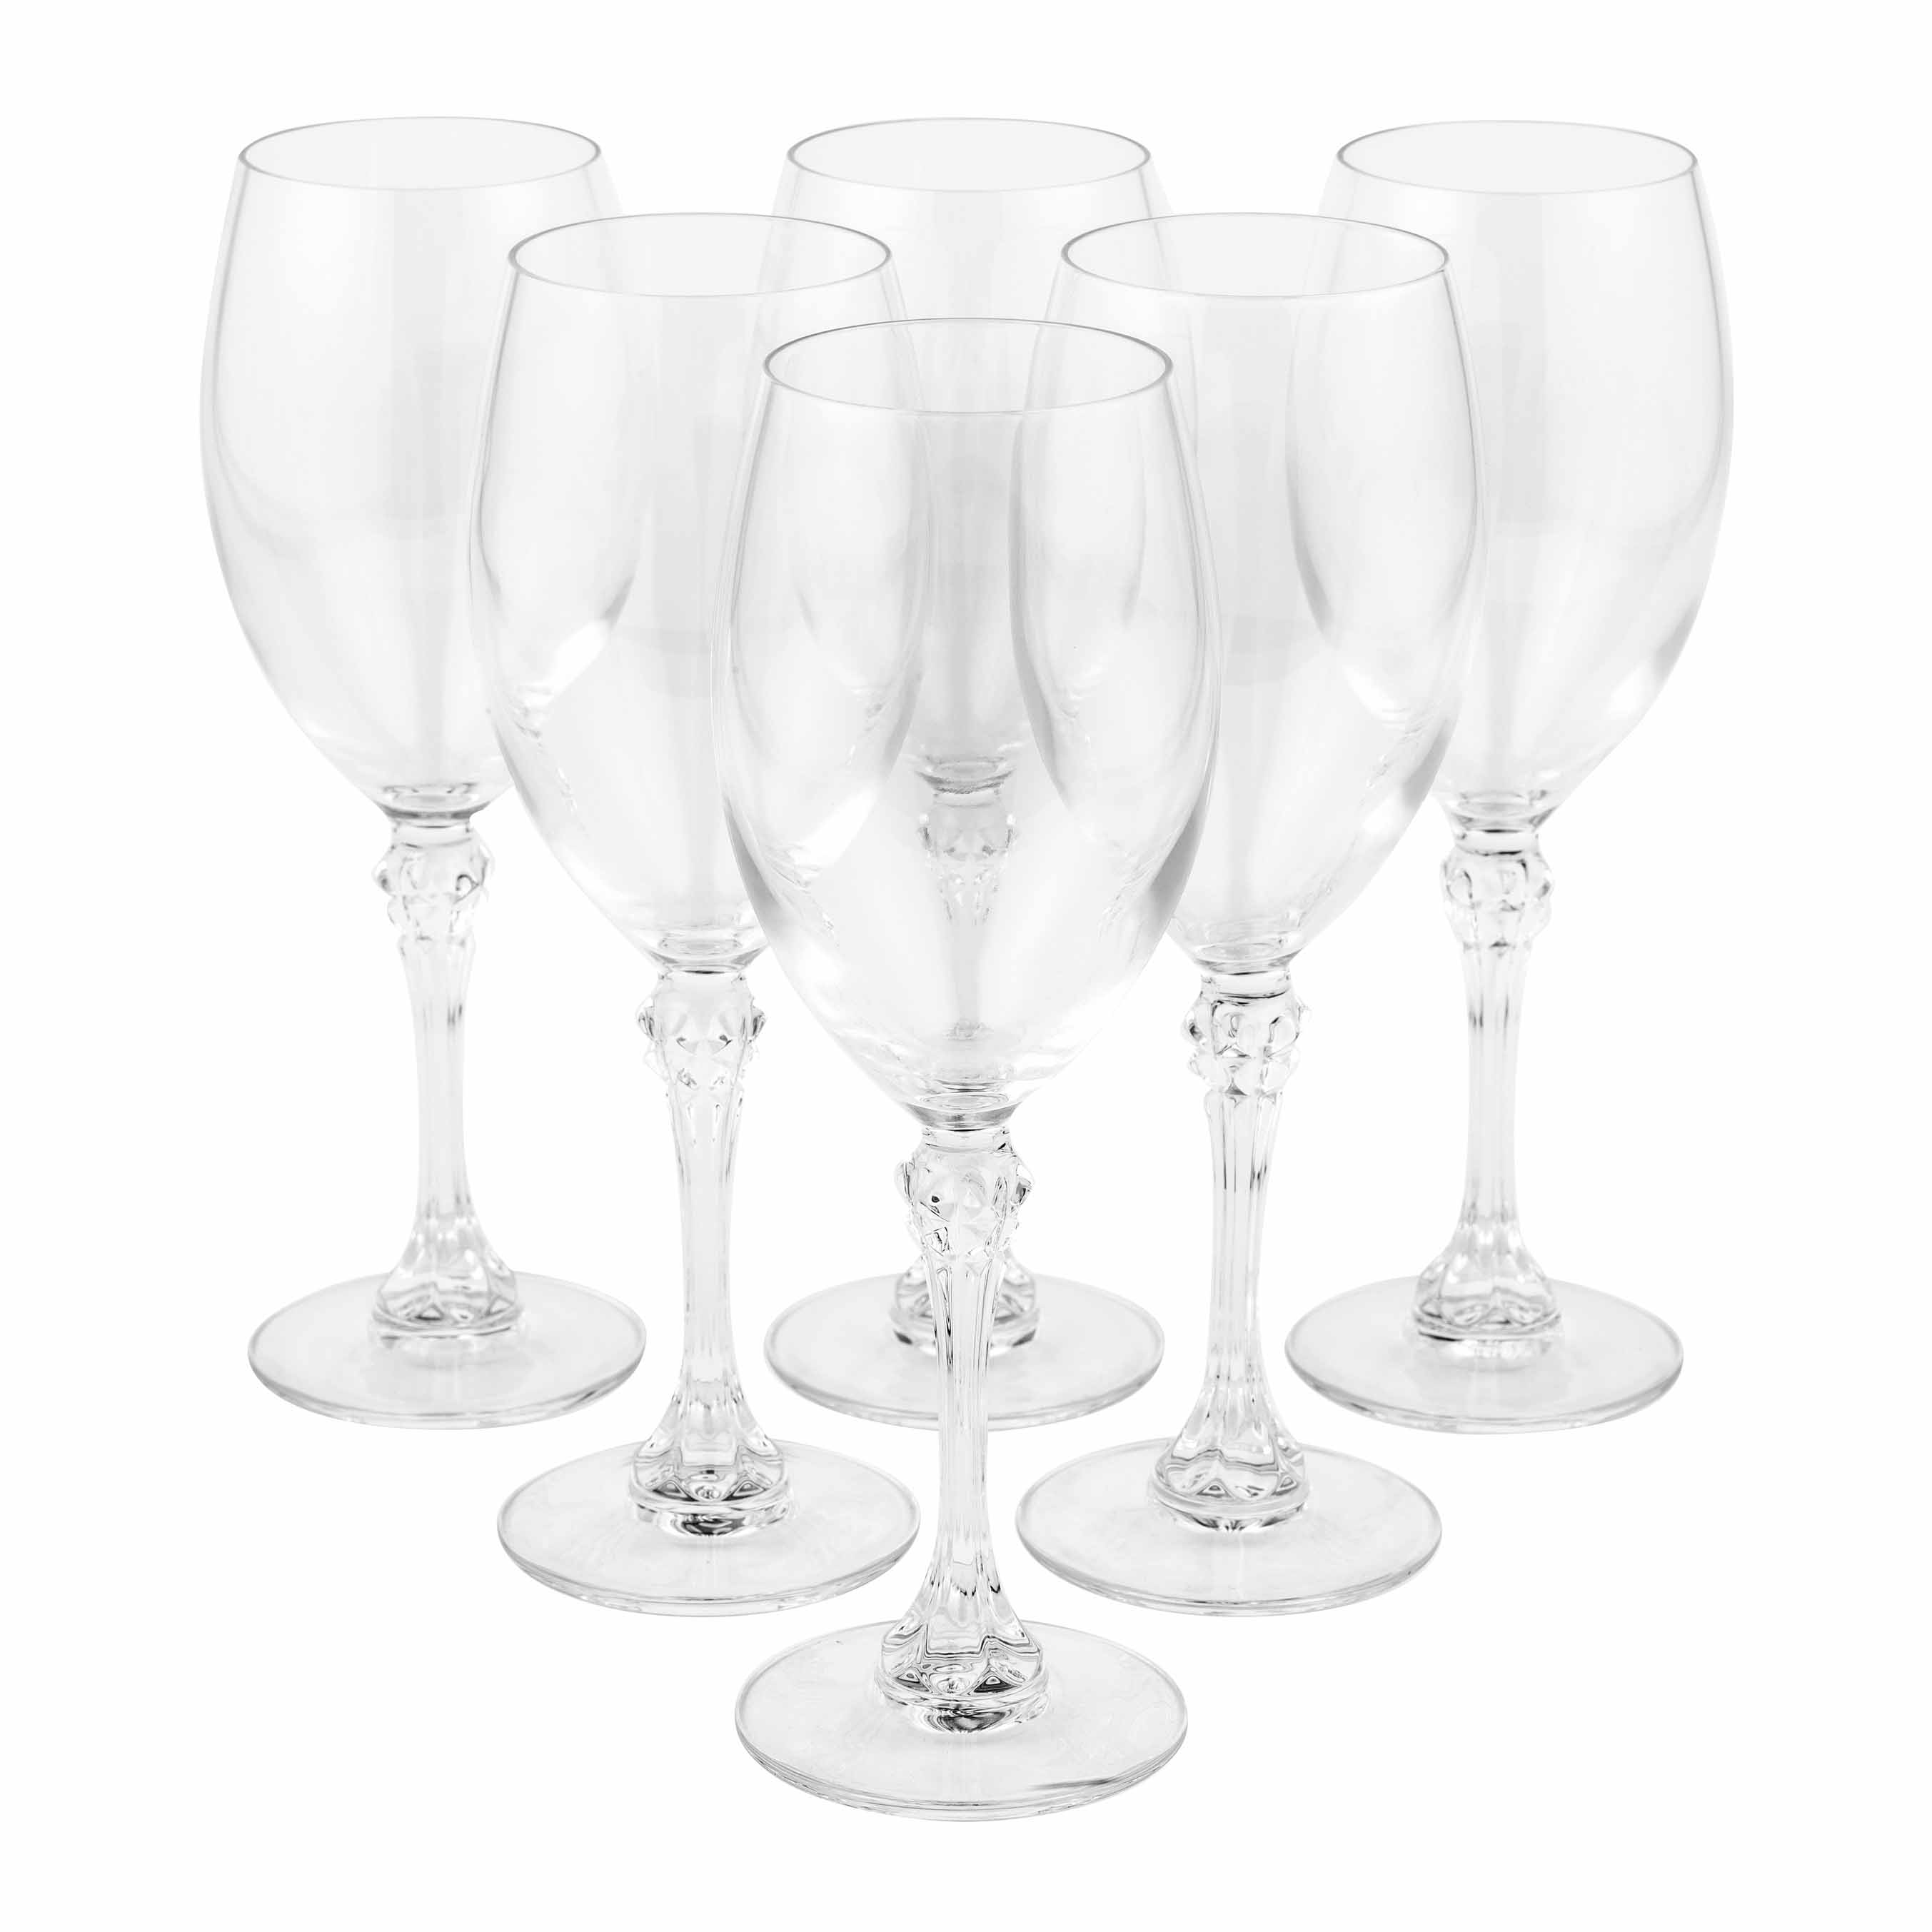 Luminarc Glass Luminarc Combo 2170 Poetic 35 Cl Wine Glasses Pack Of 6